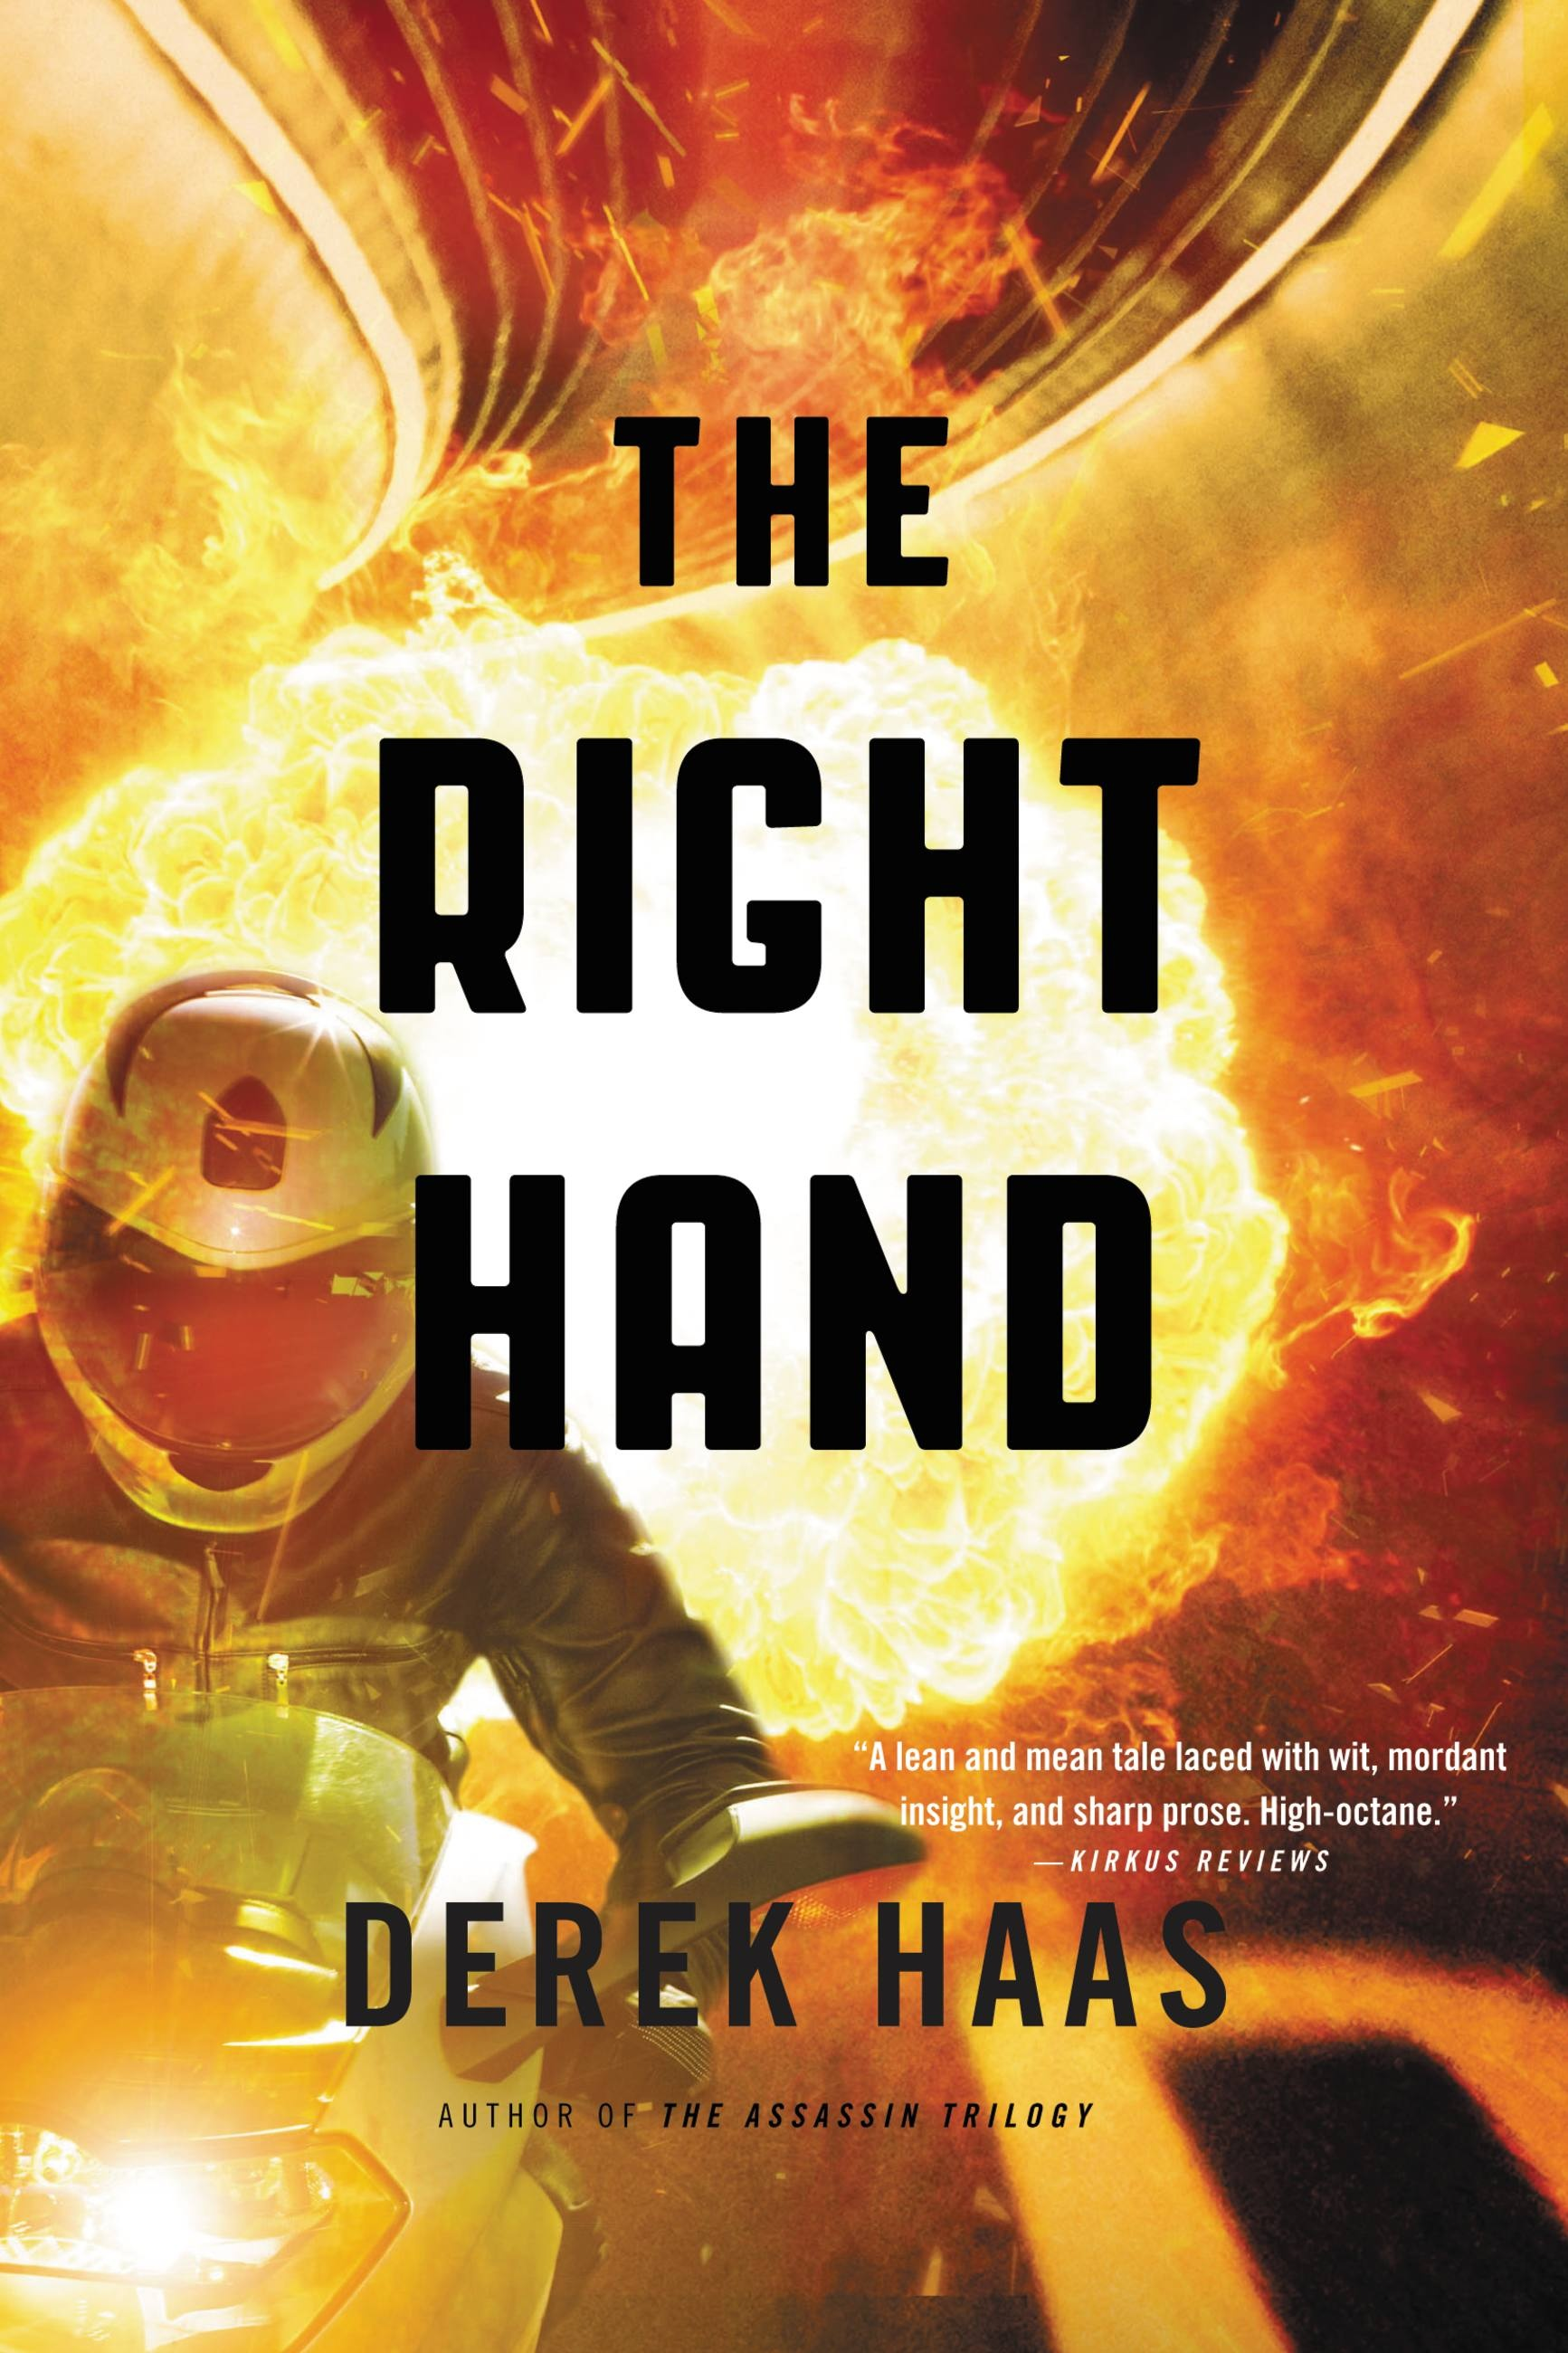 The Right Hand